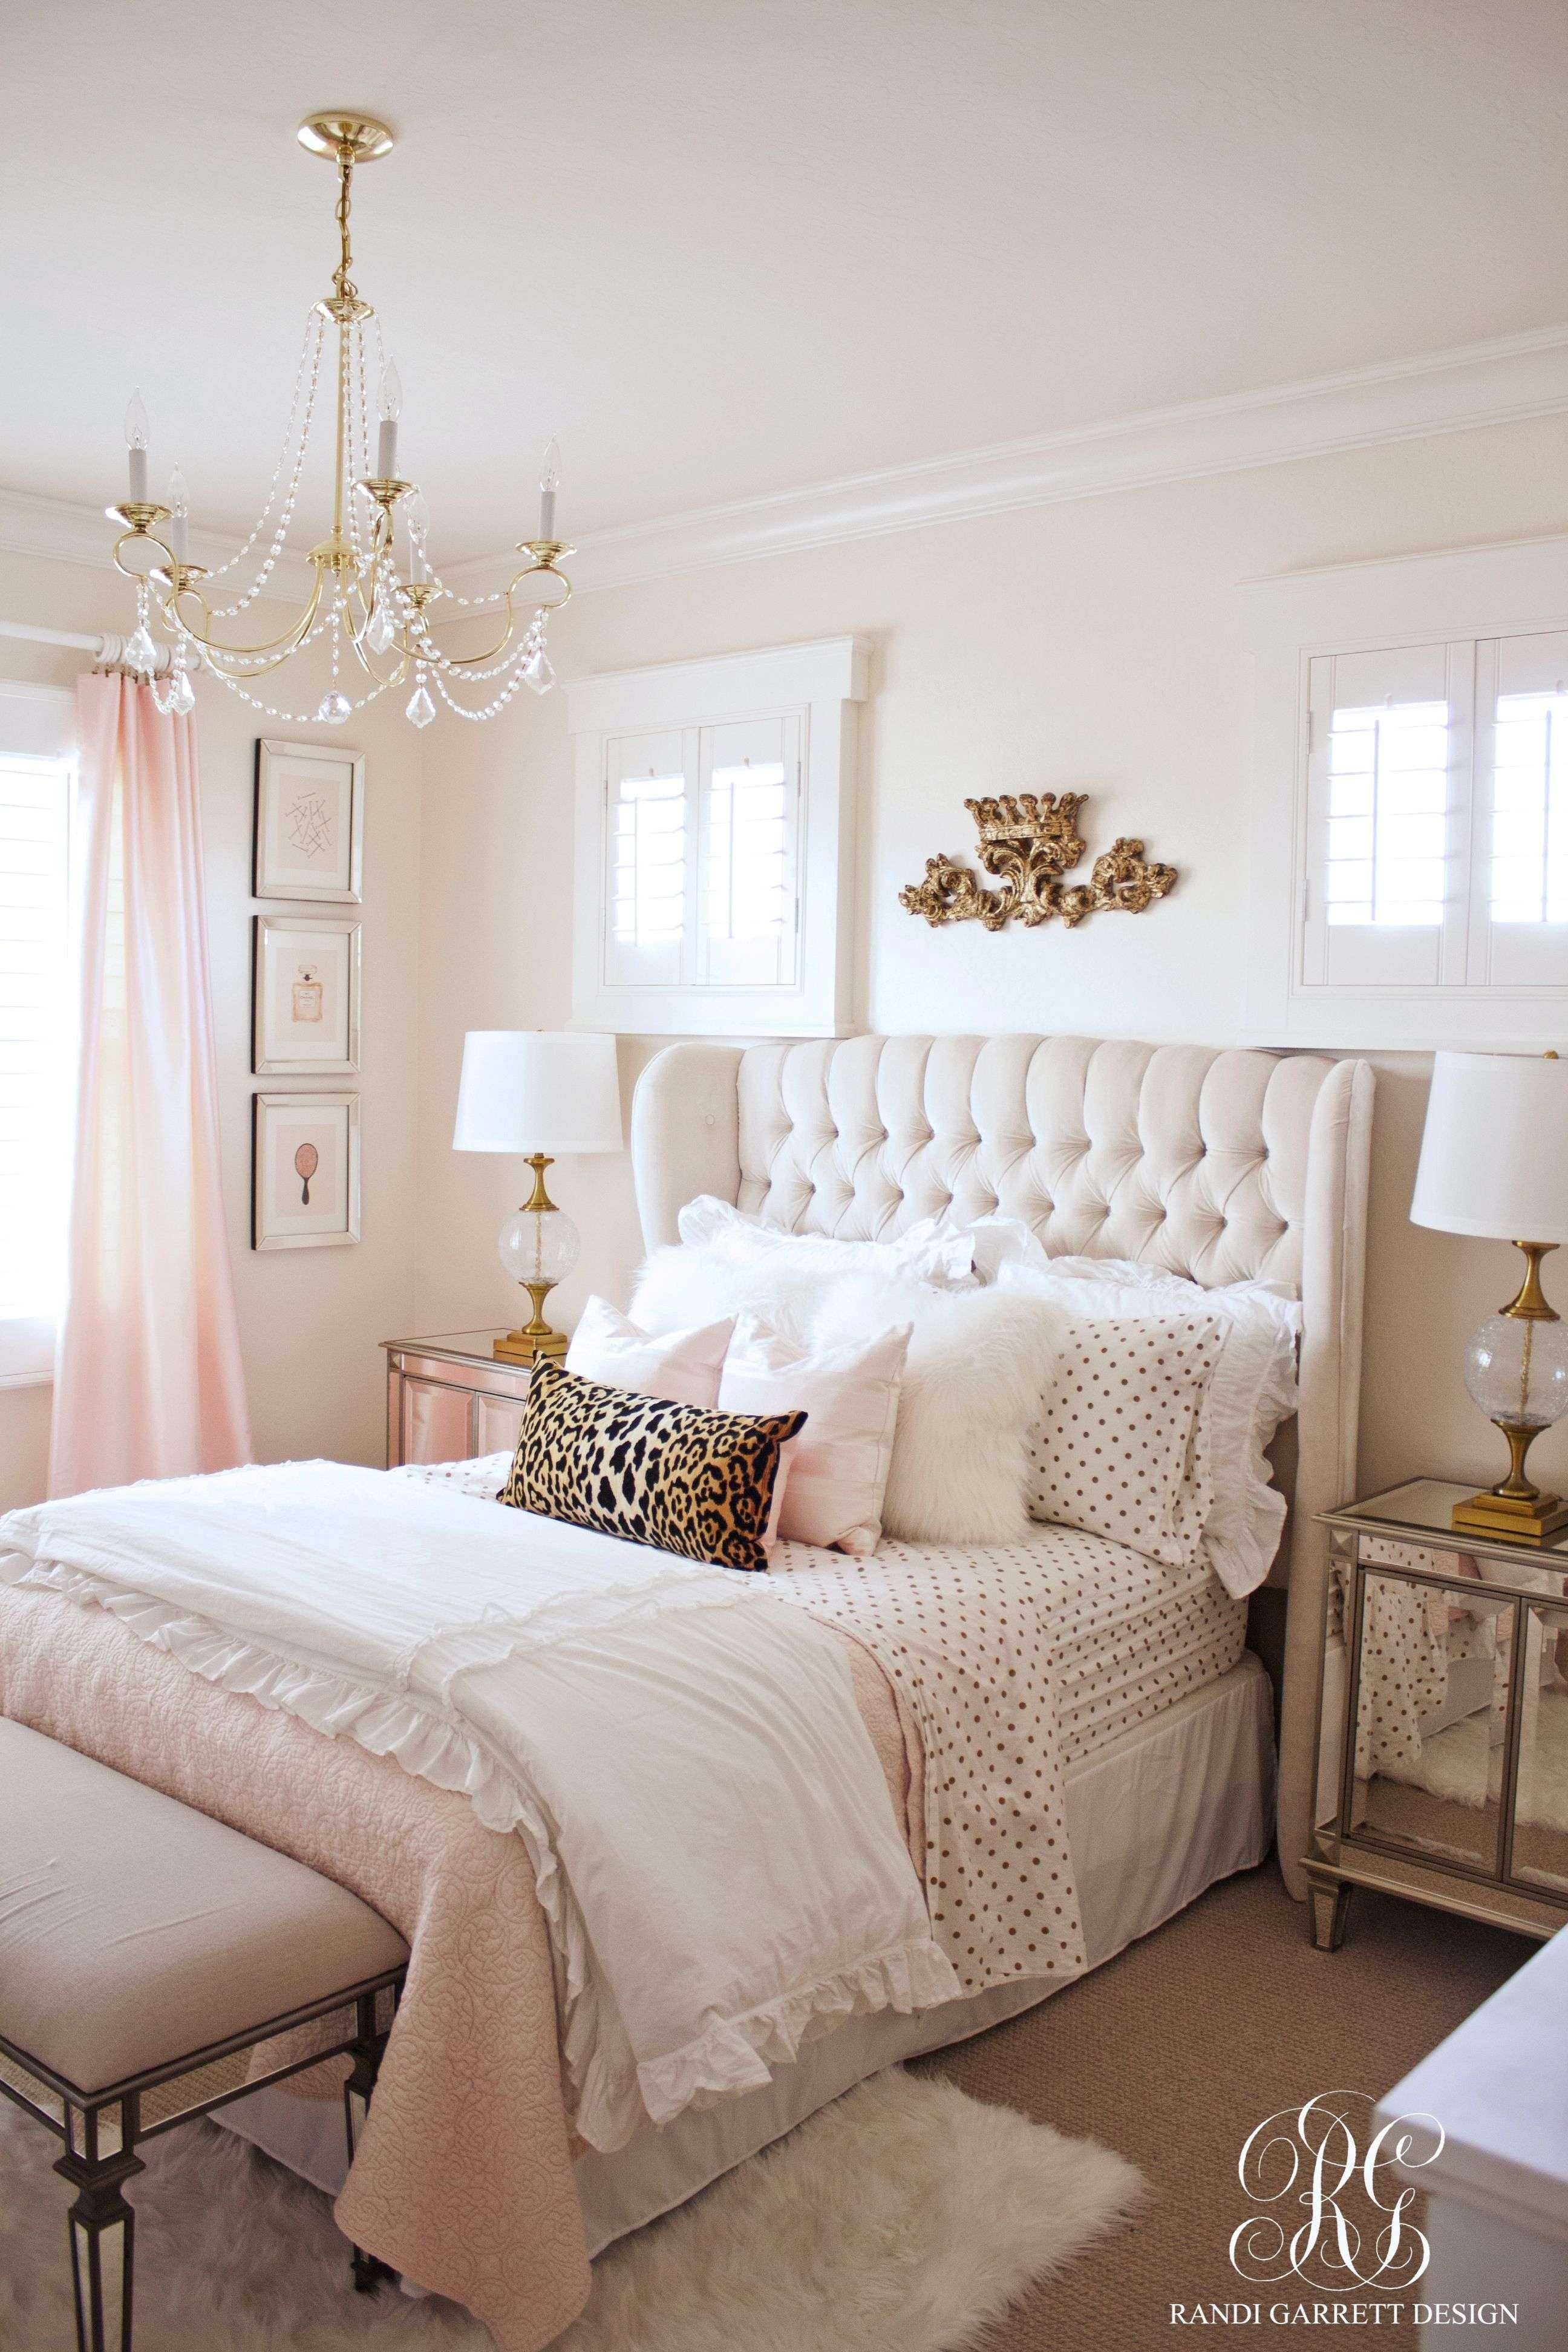 Country Chic Rustic Glam Bedroom - Awesome Country Chic ...